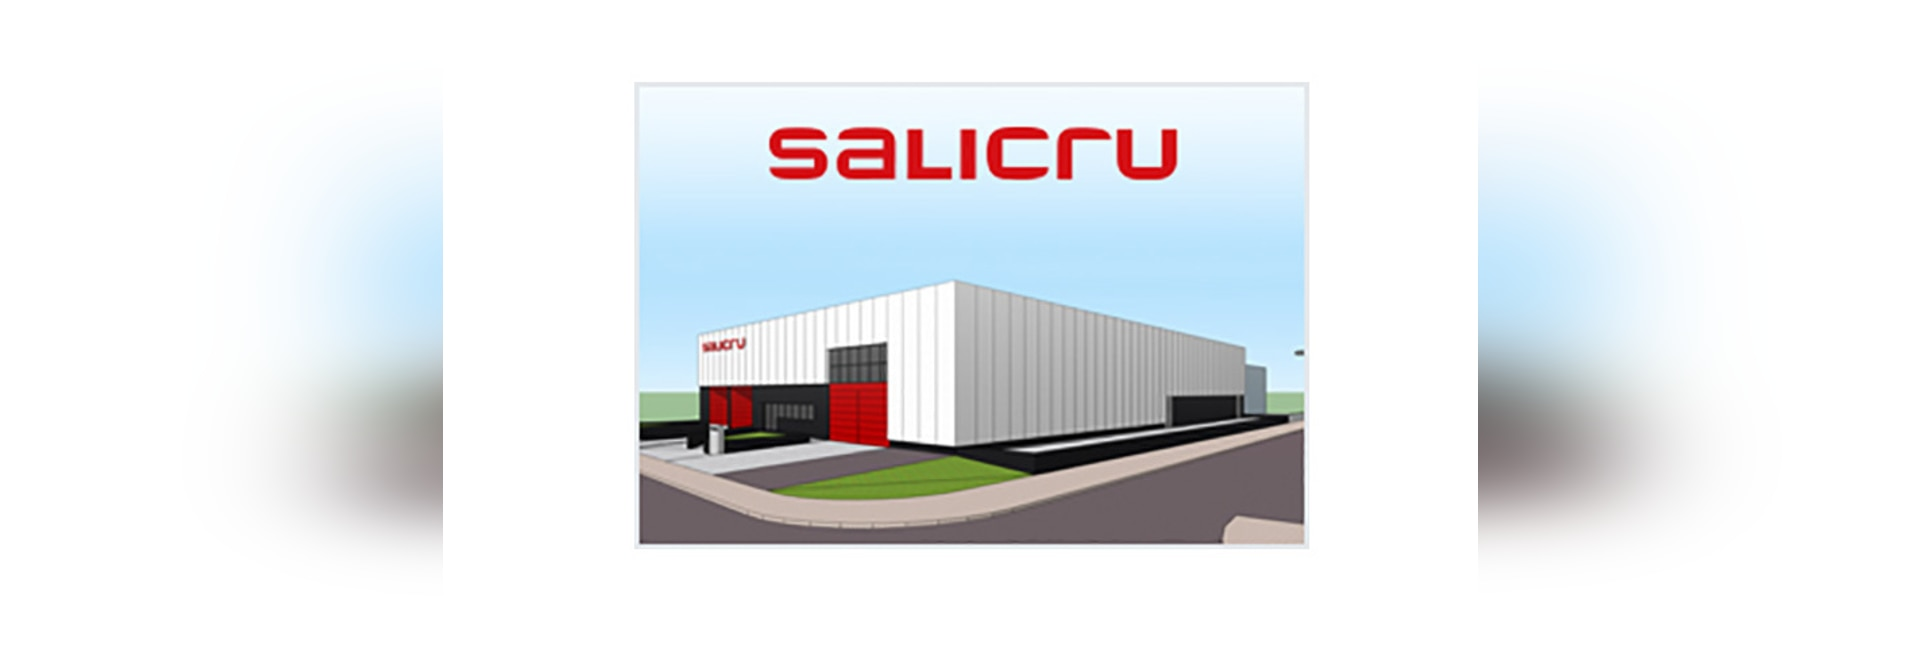 Salicru builds a new logistics and distribution warehouse